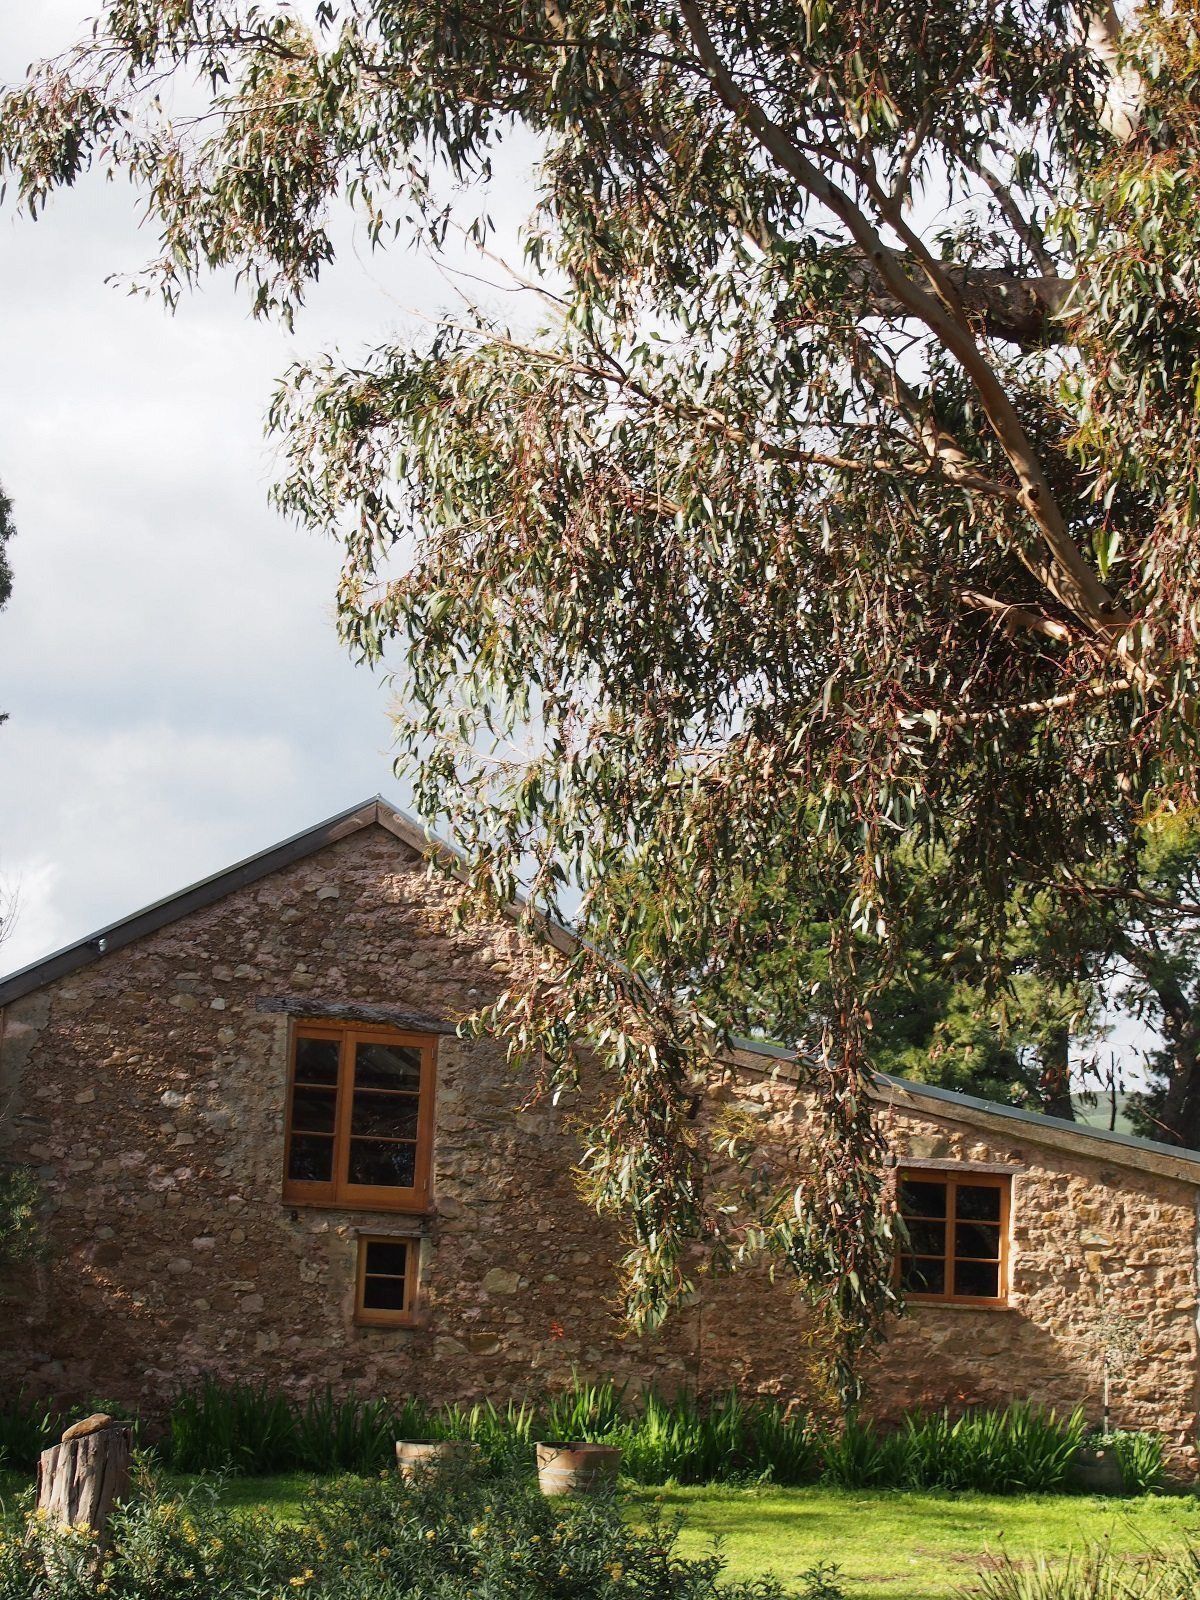 Rebuilding the barn 1890 mclaren vale upcycling recycling inspiration pinterest